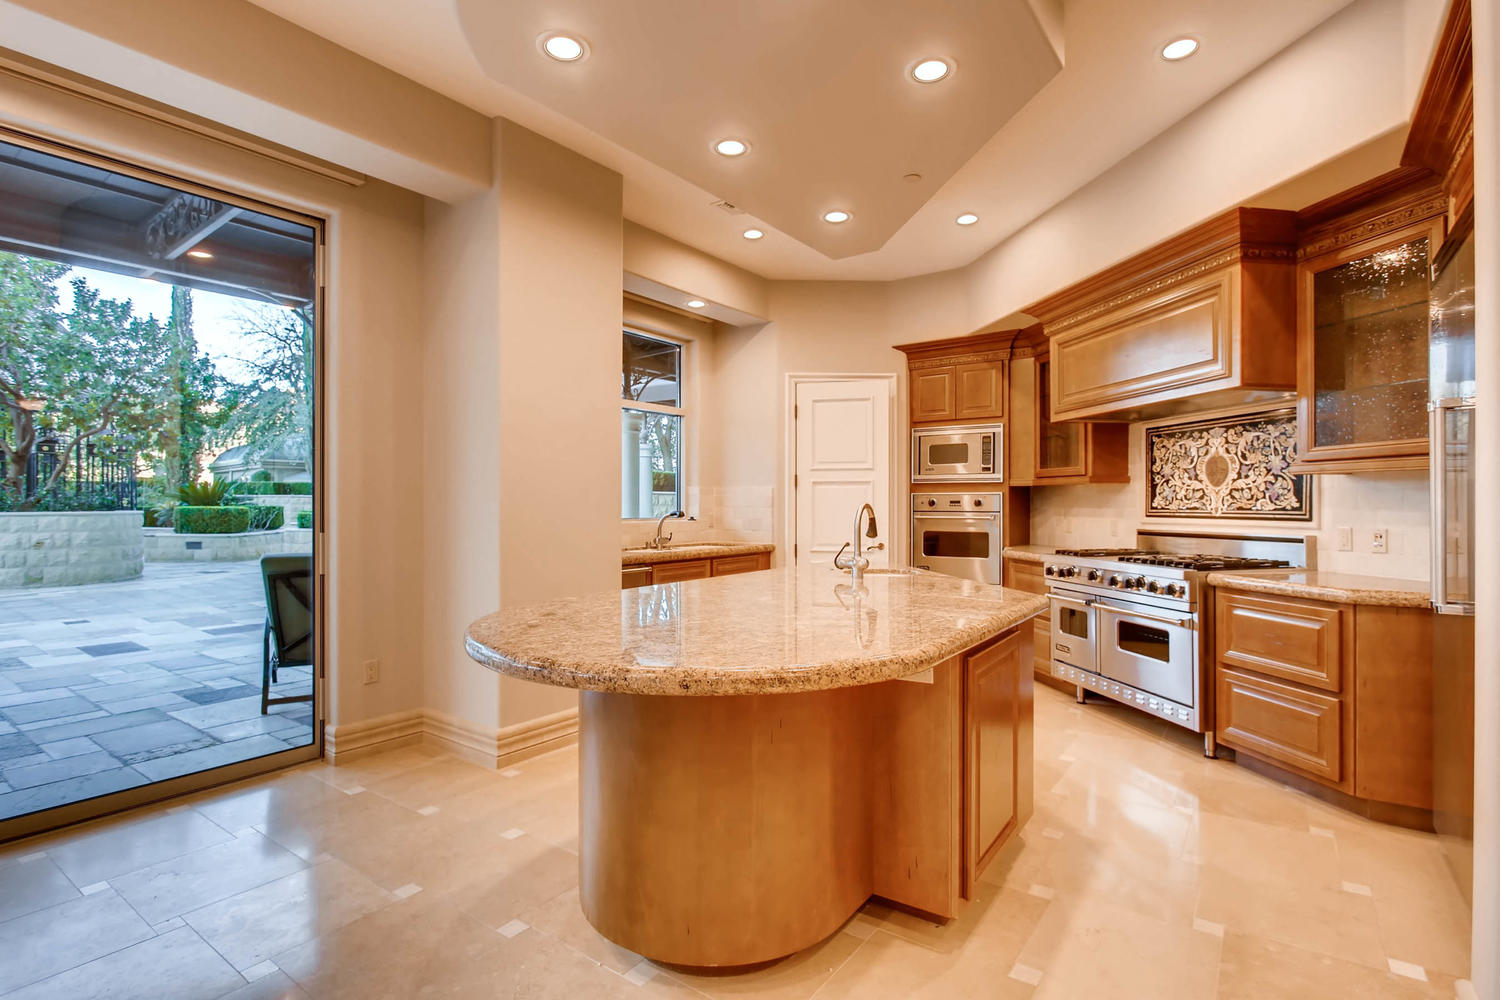 9101-alta-101-las-vegas-nv-large-011-8-kitchen-1500×1000-72dpi